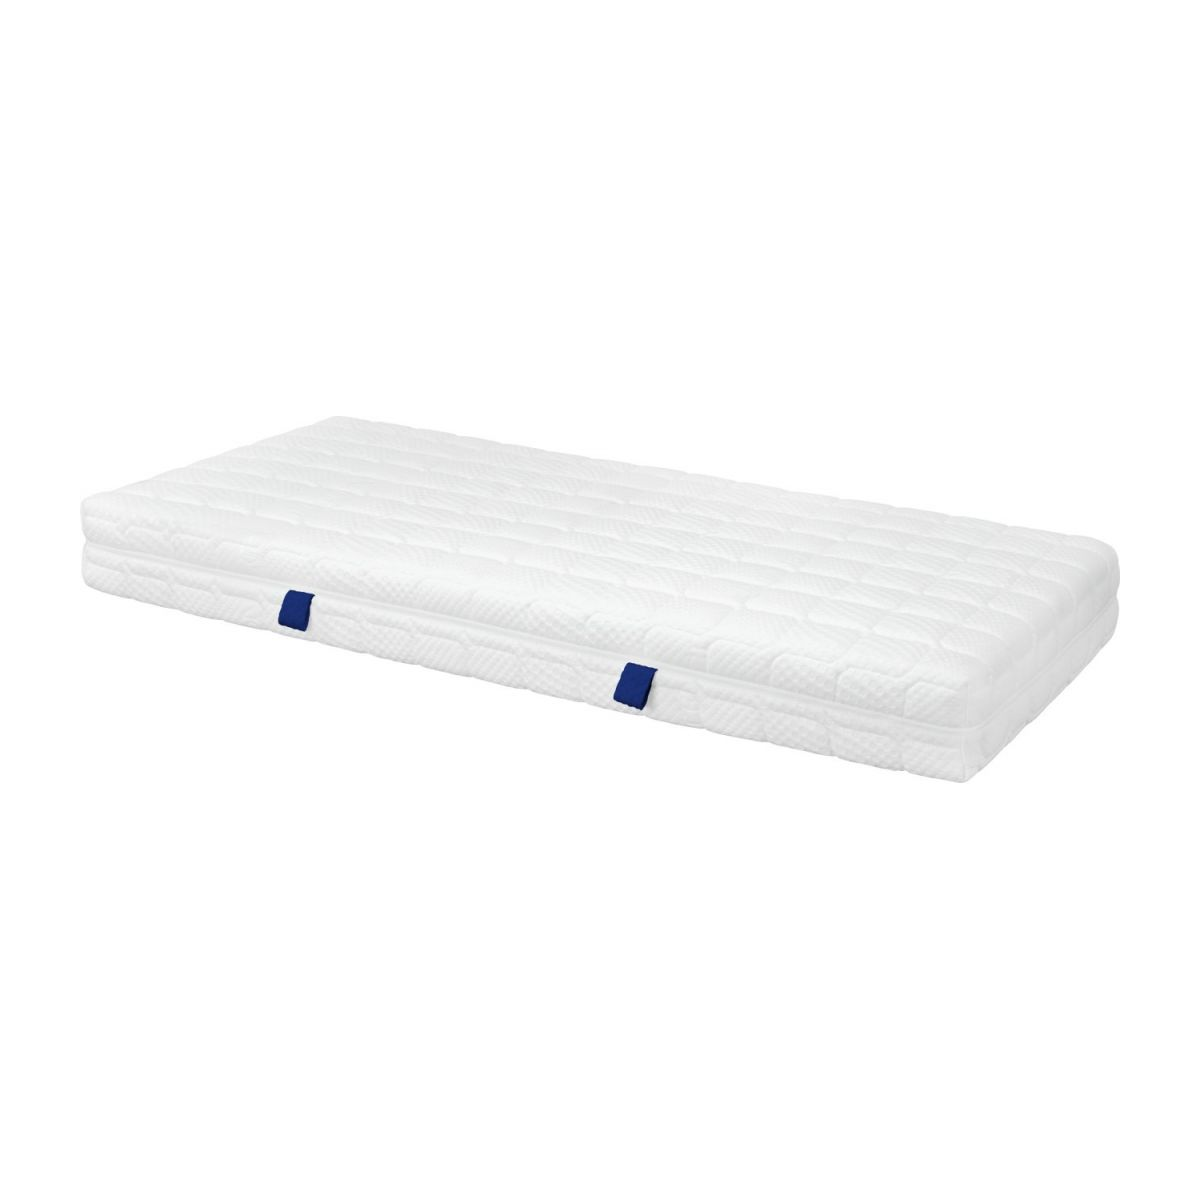 Spring mattress, width 22 cm, 80x200cm - firm support n°1